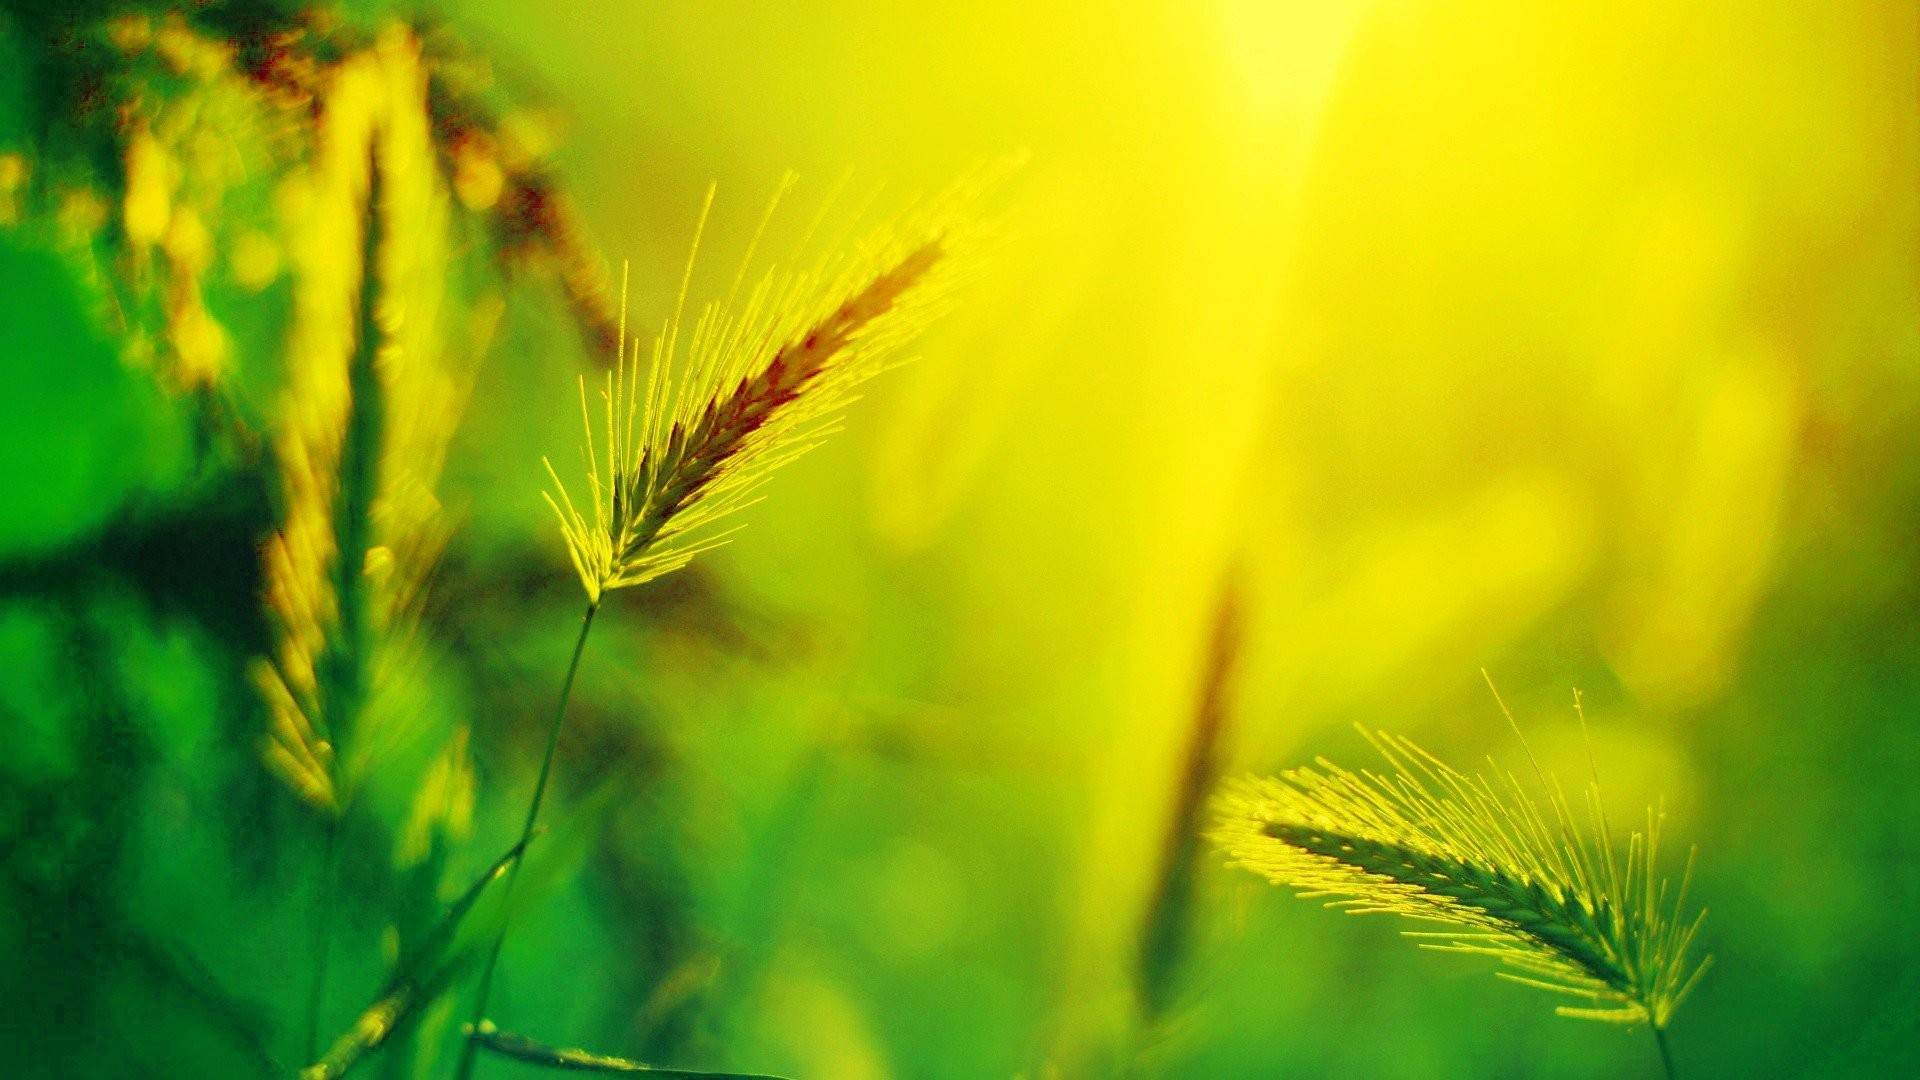 Grain Tag – Summer Grain Nature Wallpaper For Smartphone for HD 16:9 High  Definition